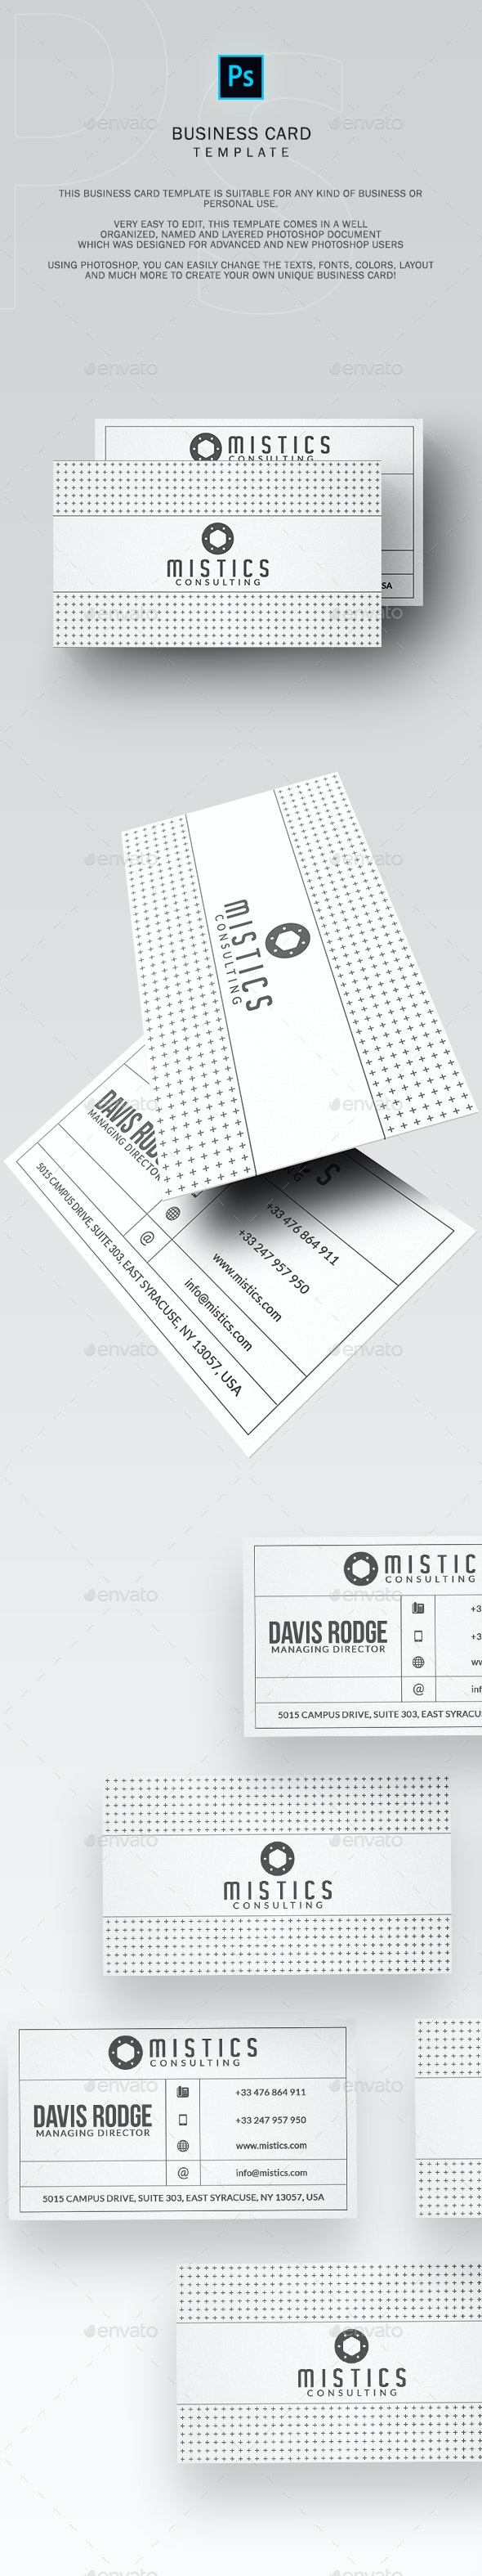 Minimal White Business Card - Business Cards Print Templates